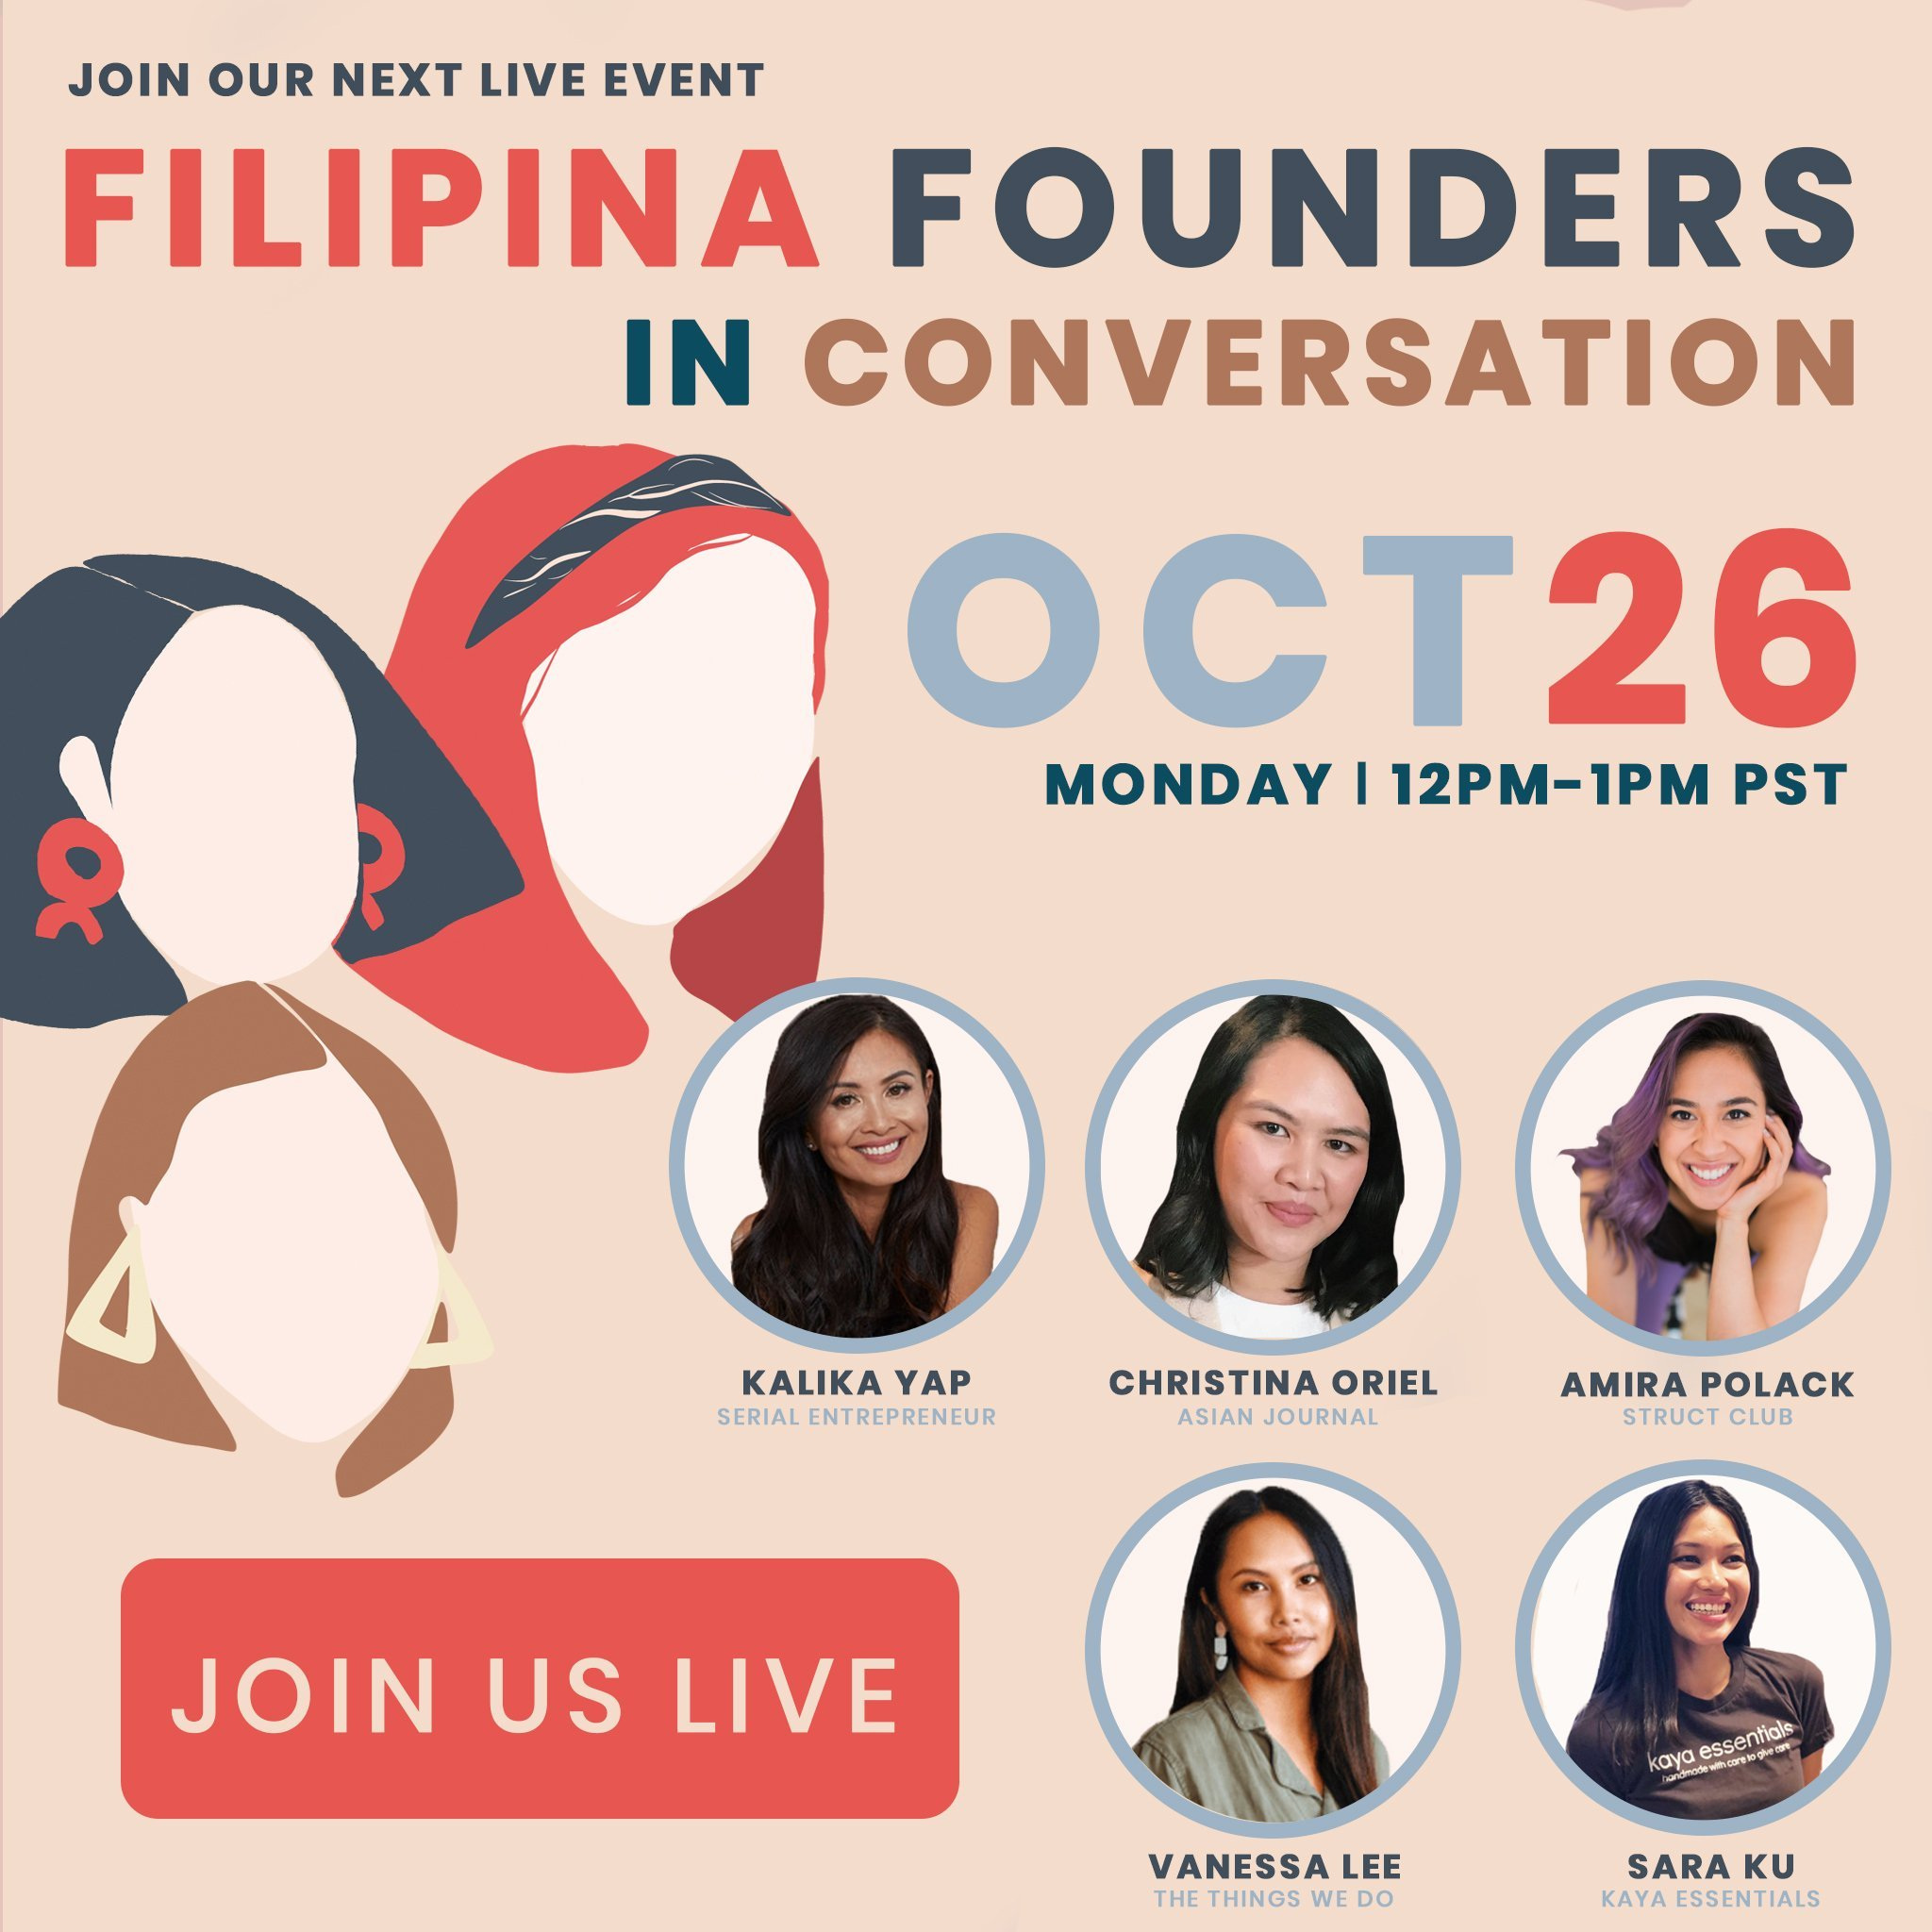 Filipina Founders in Conversation 10/26 event's featured image for kalika.com